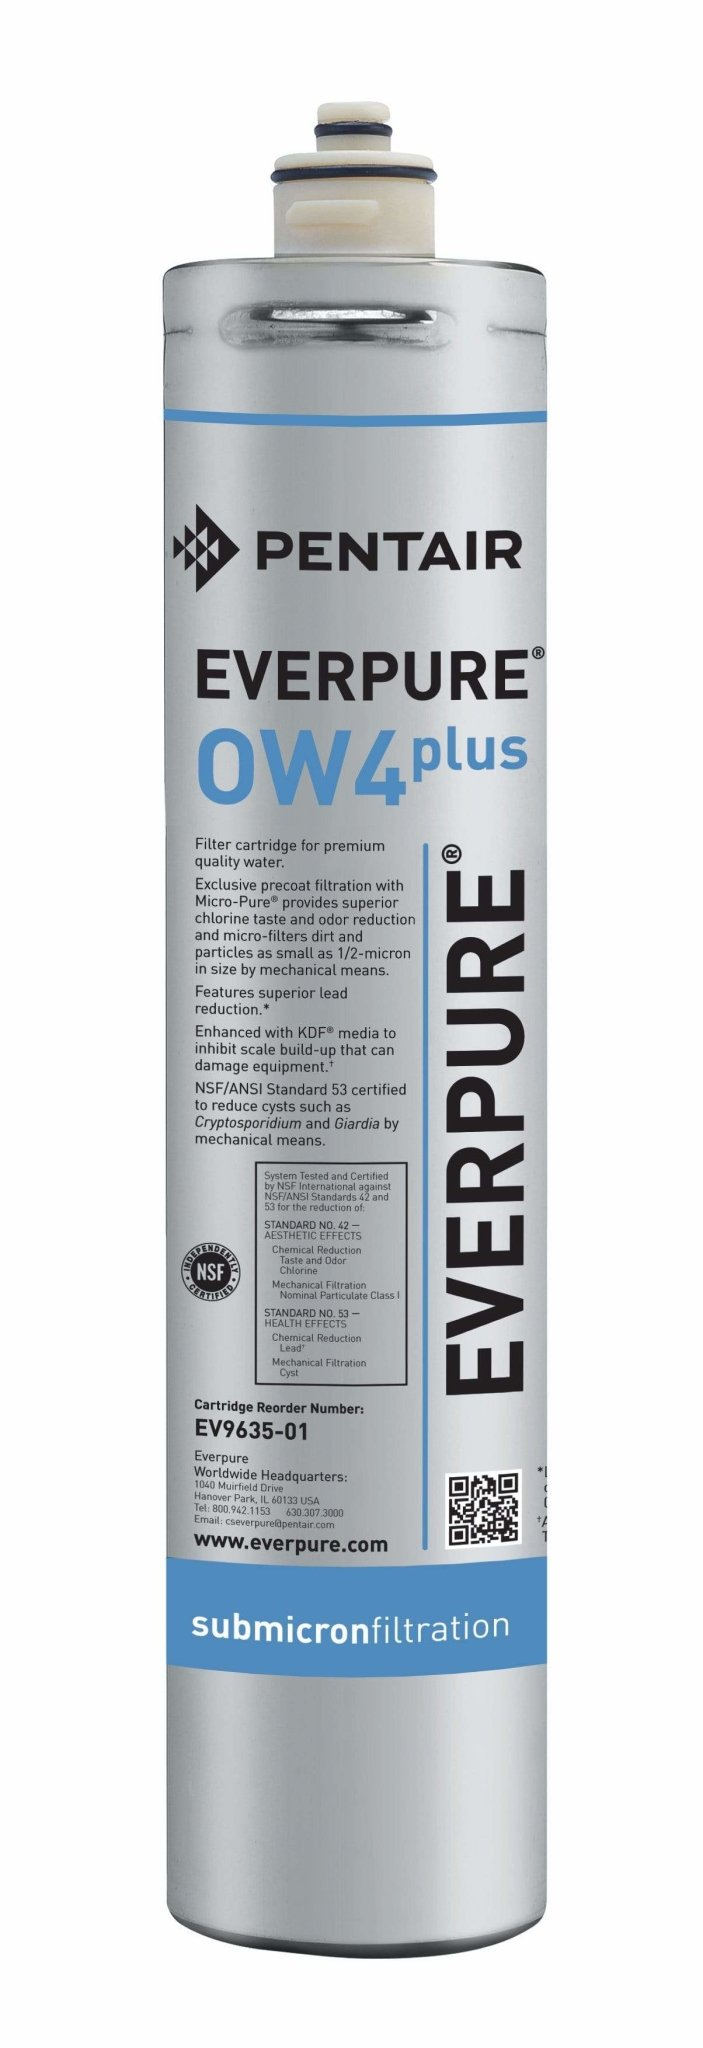 Everpure OW4 Plus Cartridge EV9635-01 - Efilters.net